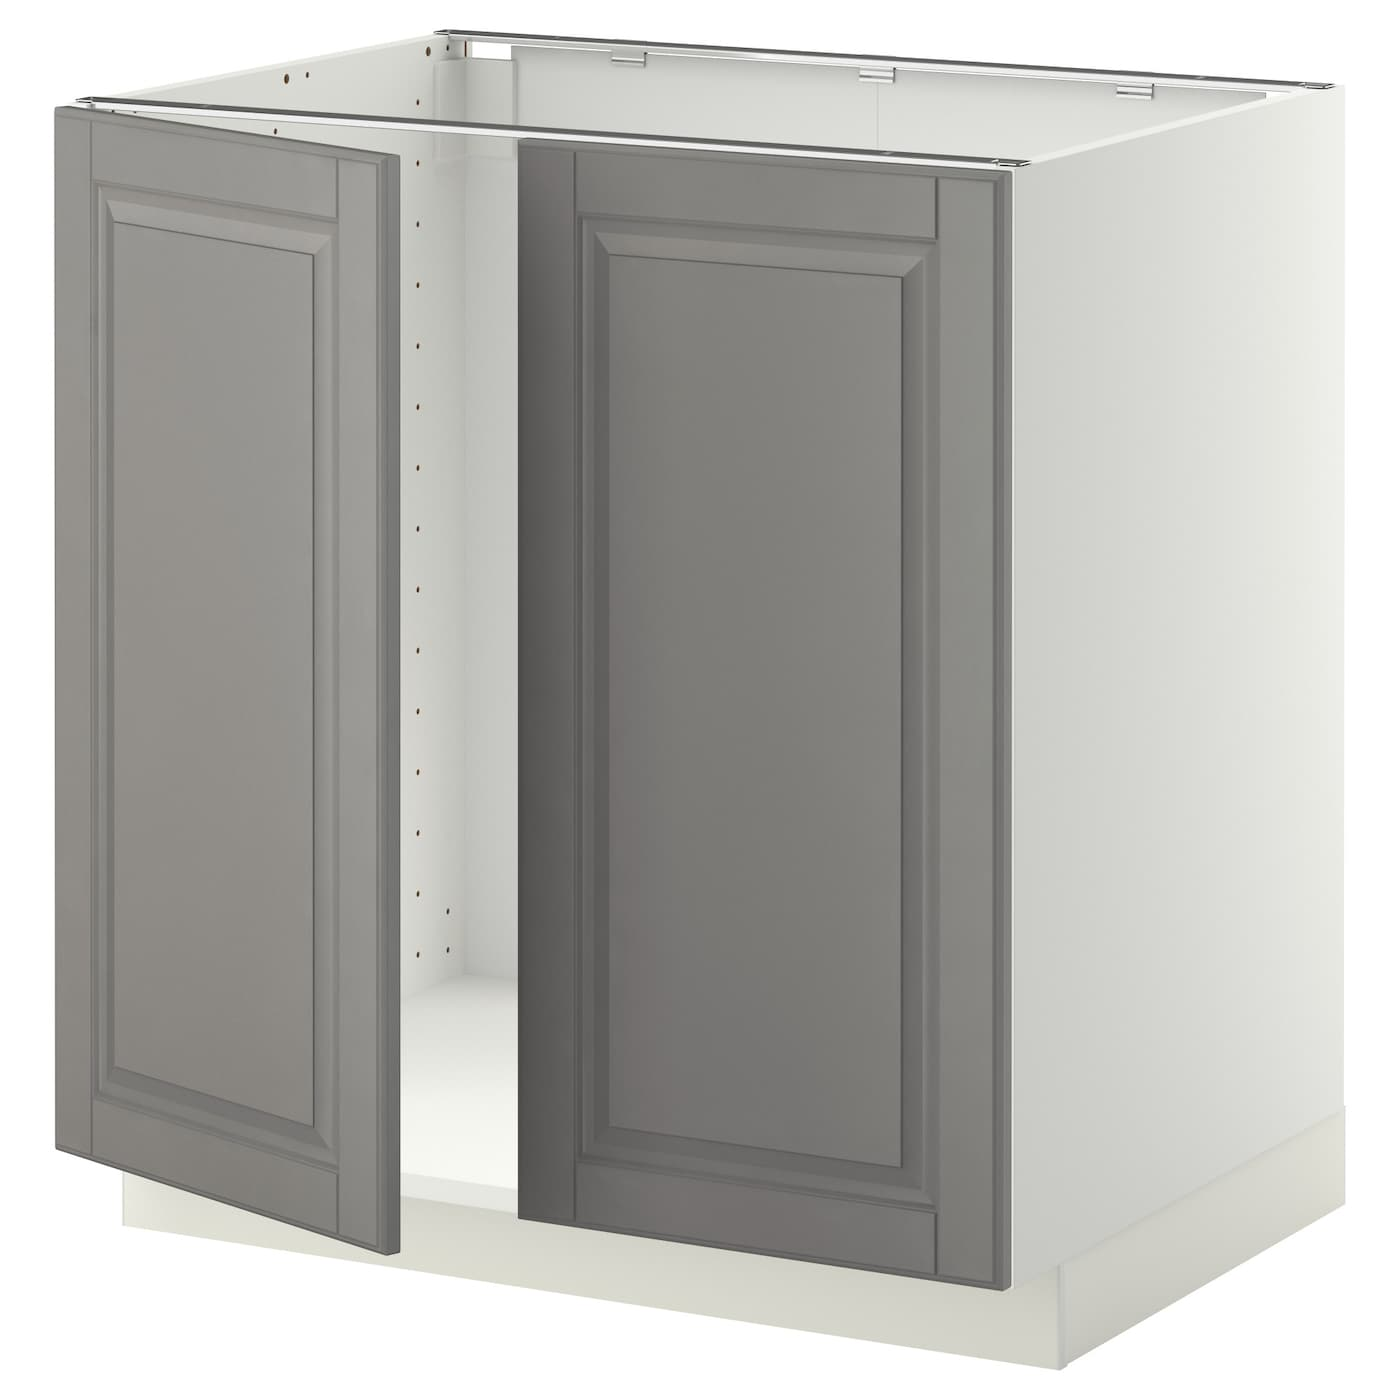 ikea bathroom cabinet doors metod base cabinet for sink 2 doors white bodbyn grey 80 17521